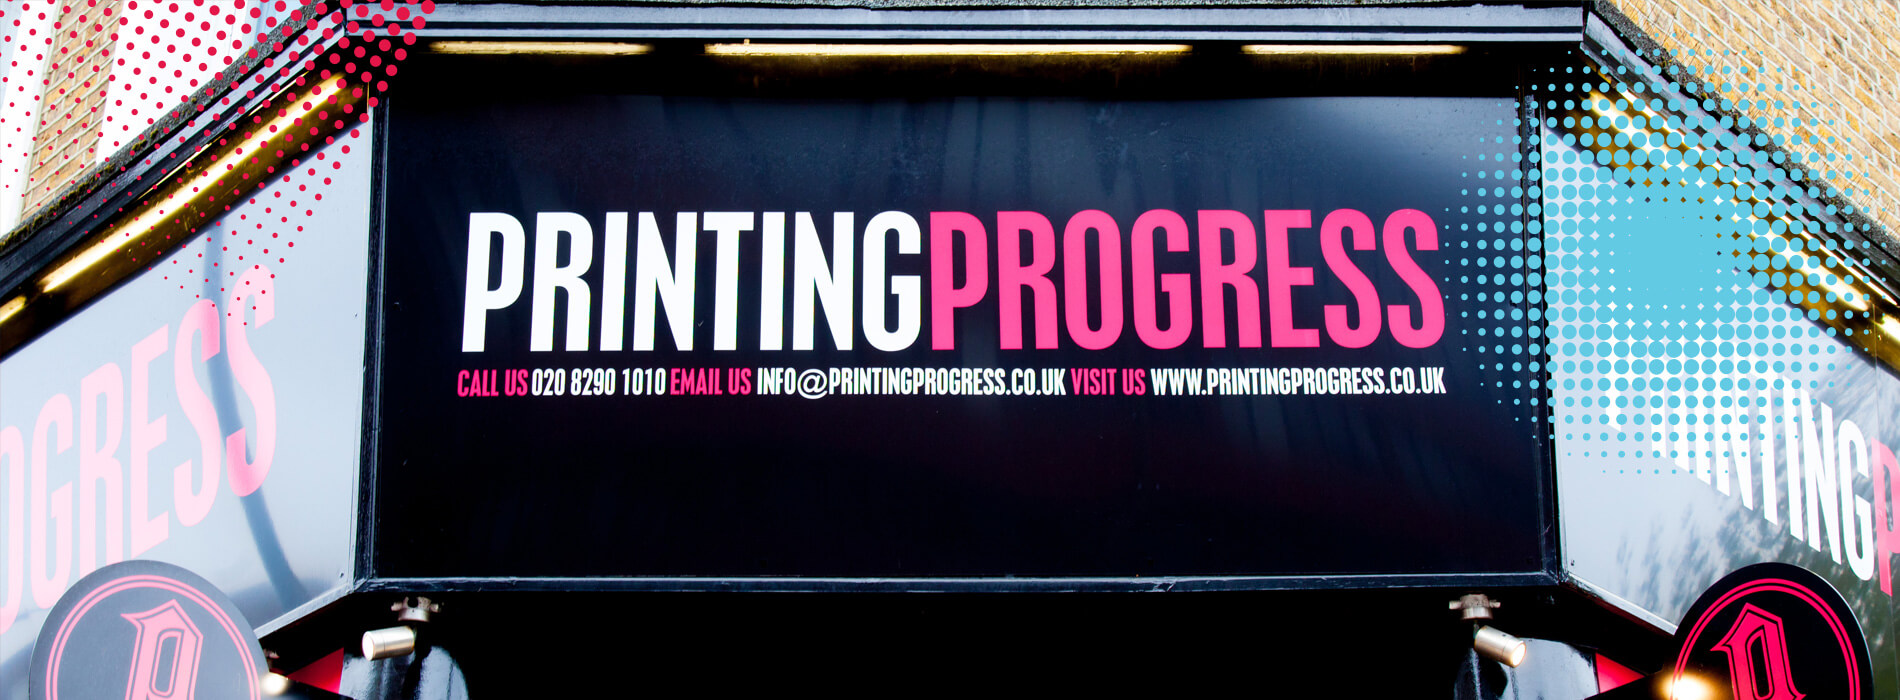 Reviews-Printingprogress-Bromley